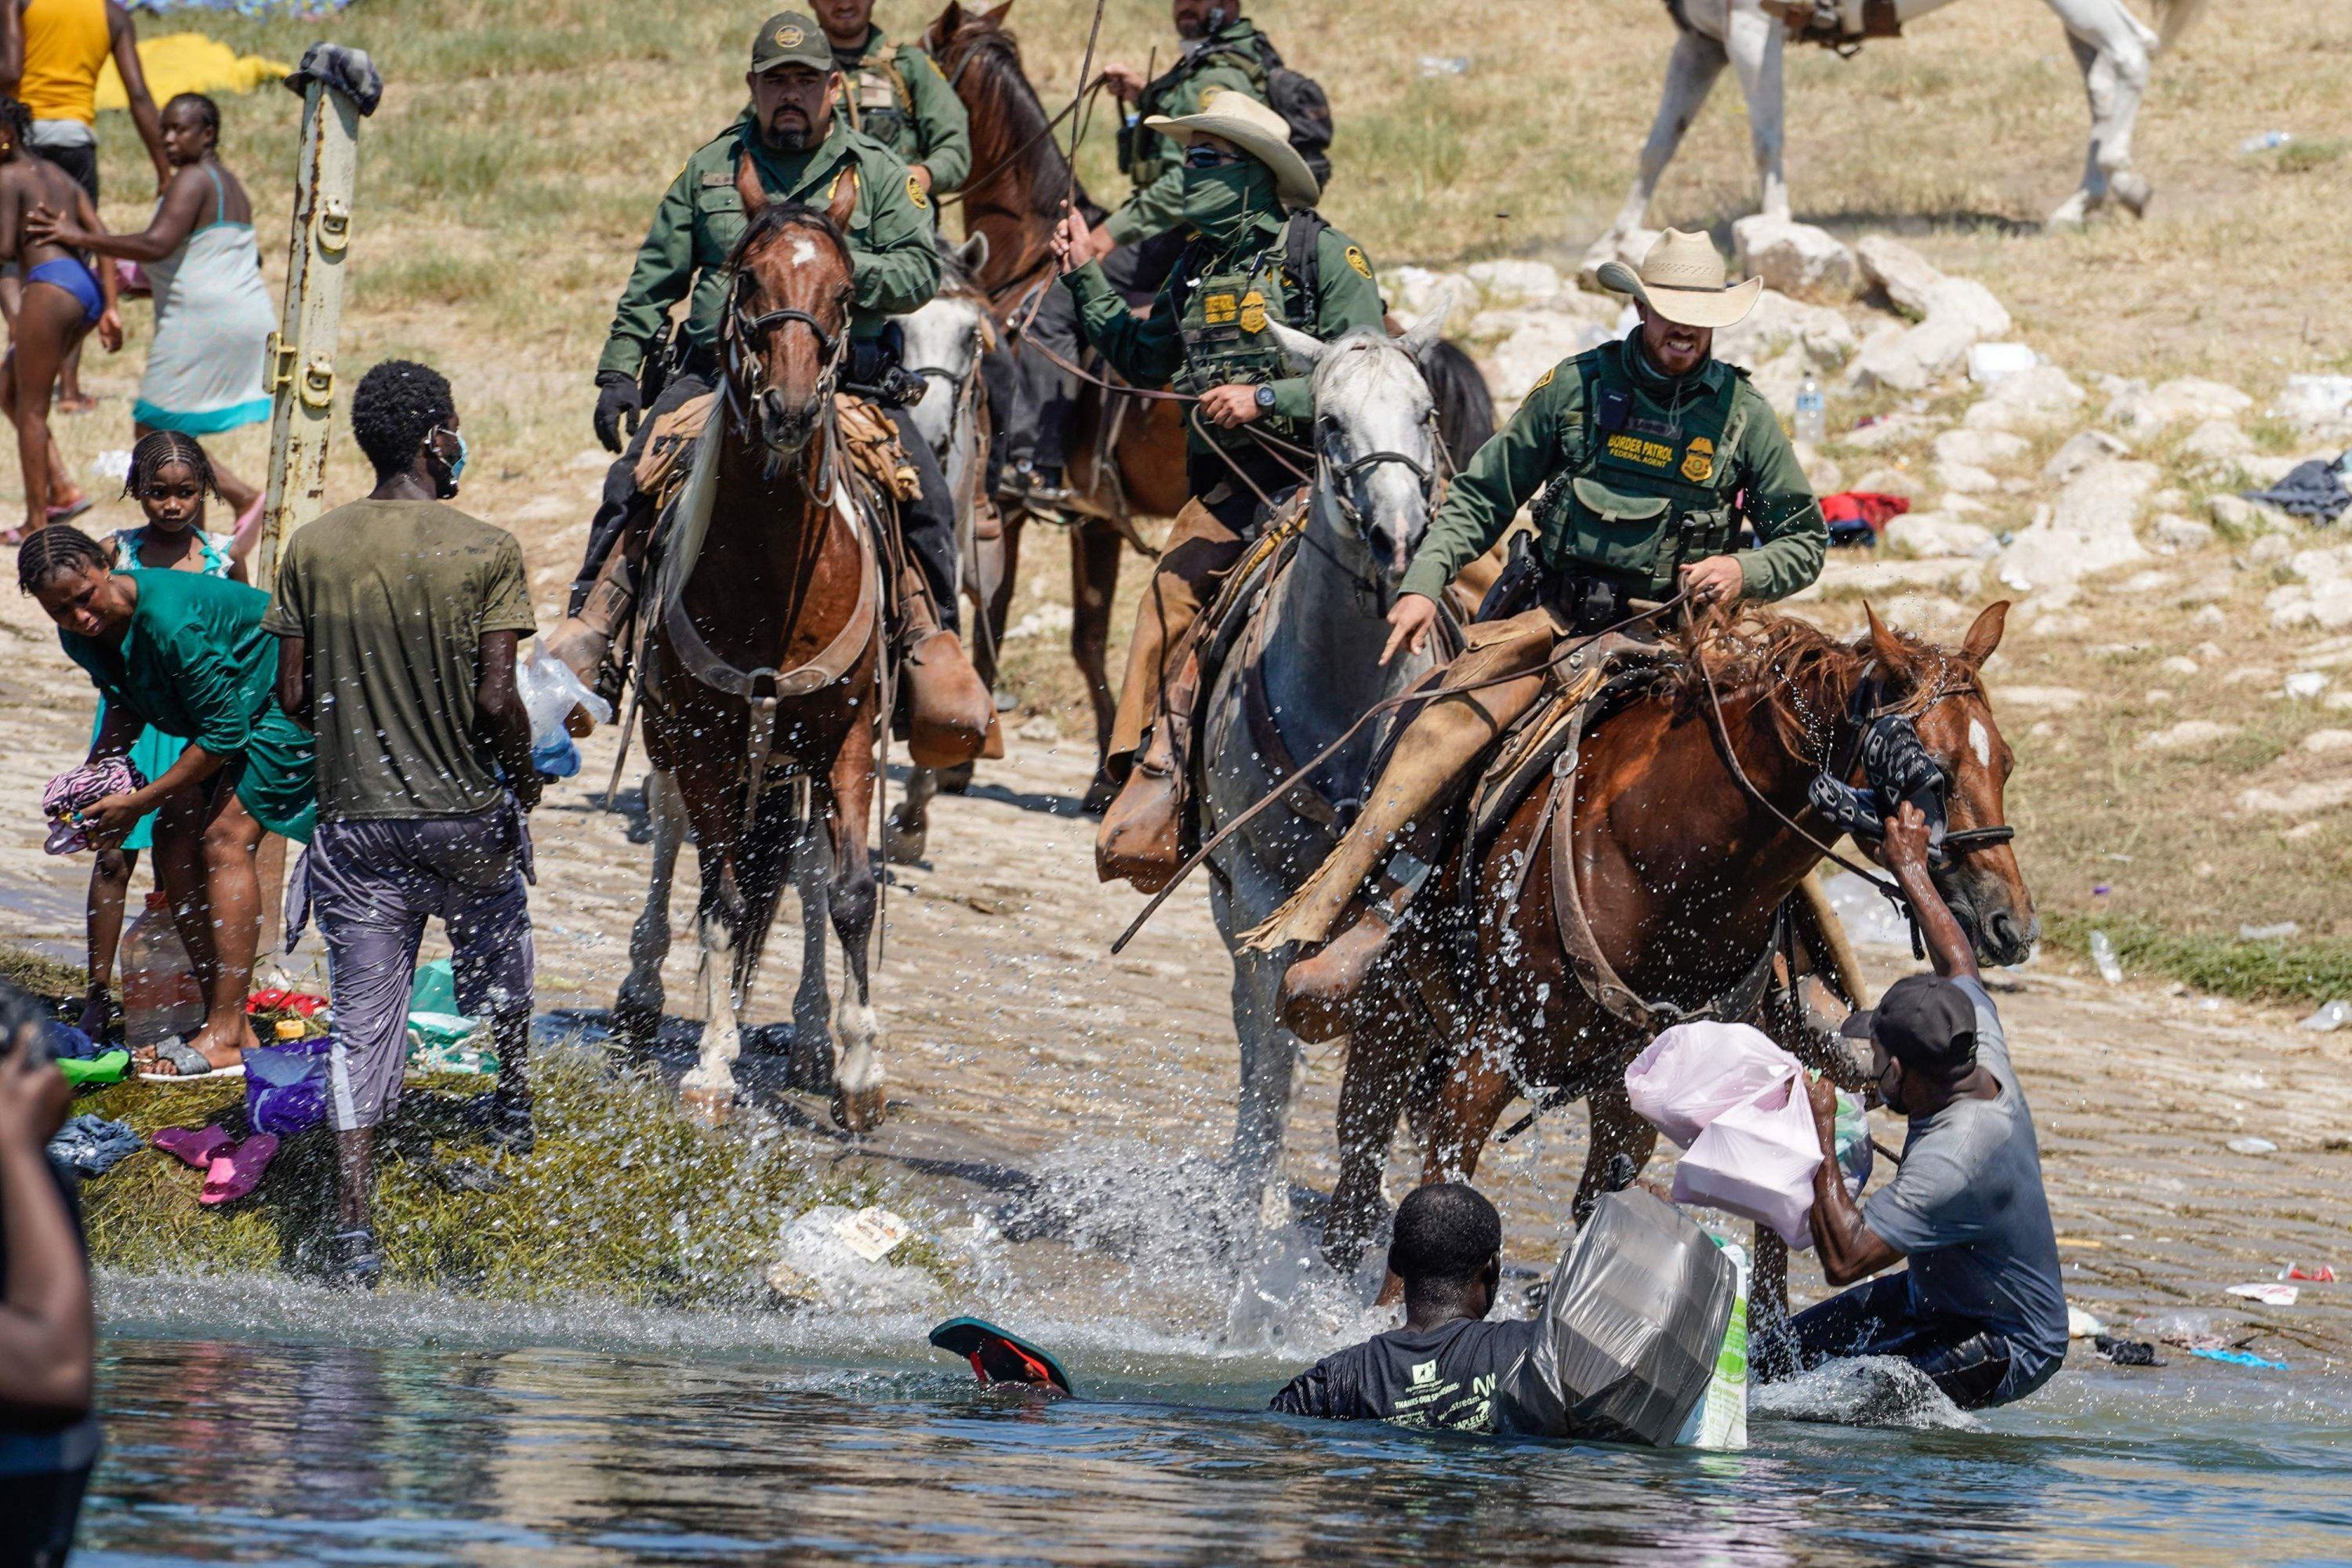 United States Border Patrol agents on horseback try to stop Haitian migrants from entering an encampment on the banks of the Rio Grande near the Acuna Del Rio International Bridge in Del Rio, Texas, U.S., on Sept. 19, 2021. (AFP Photo)